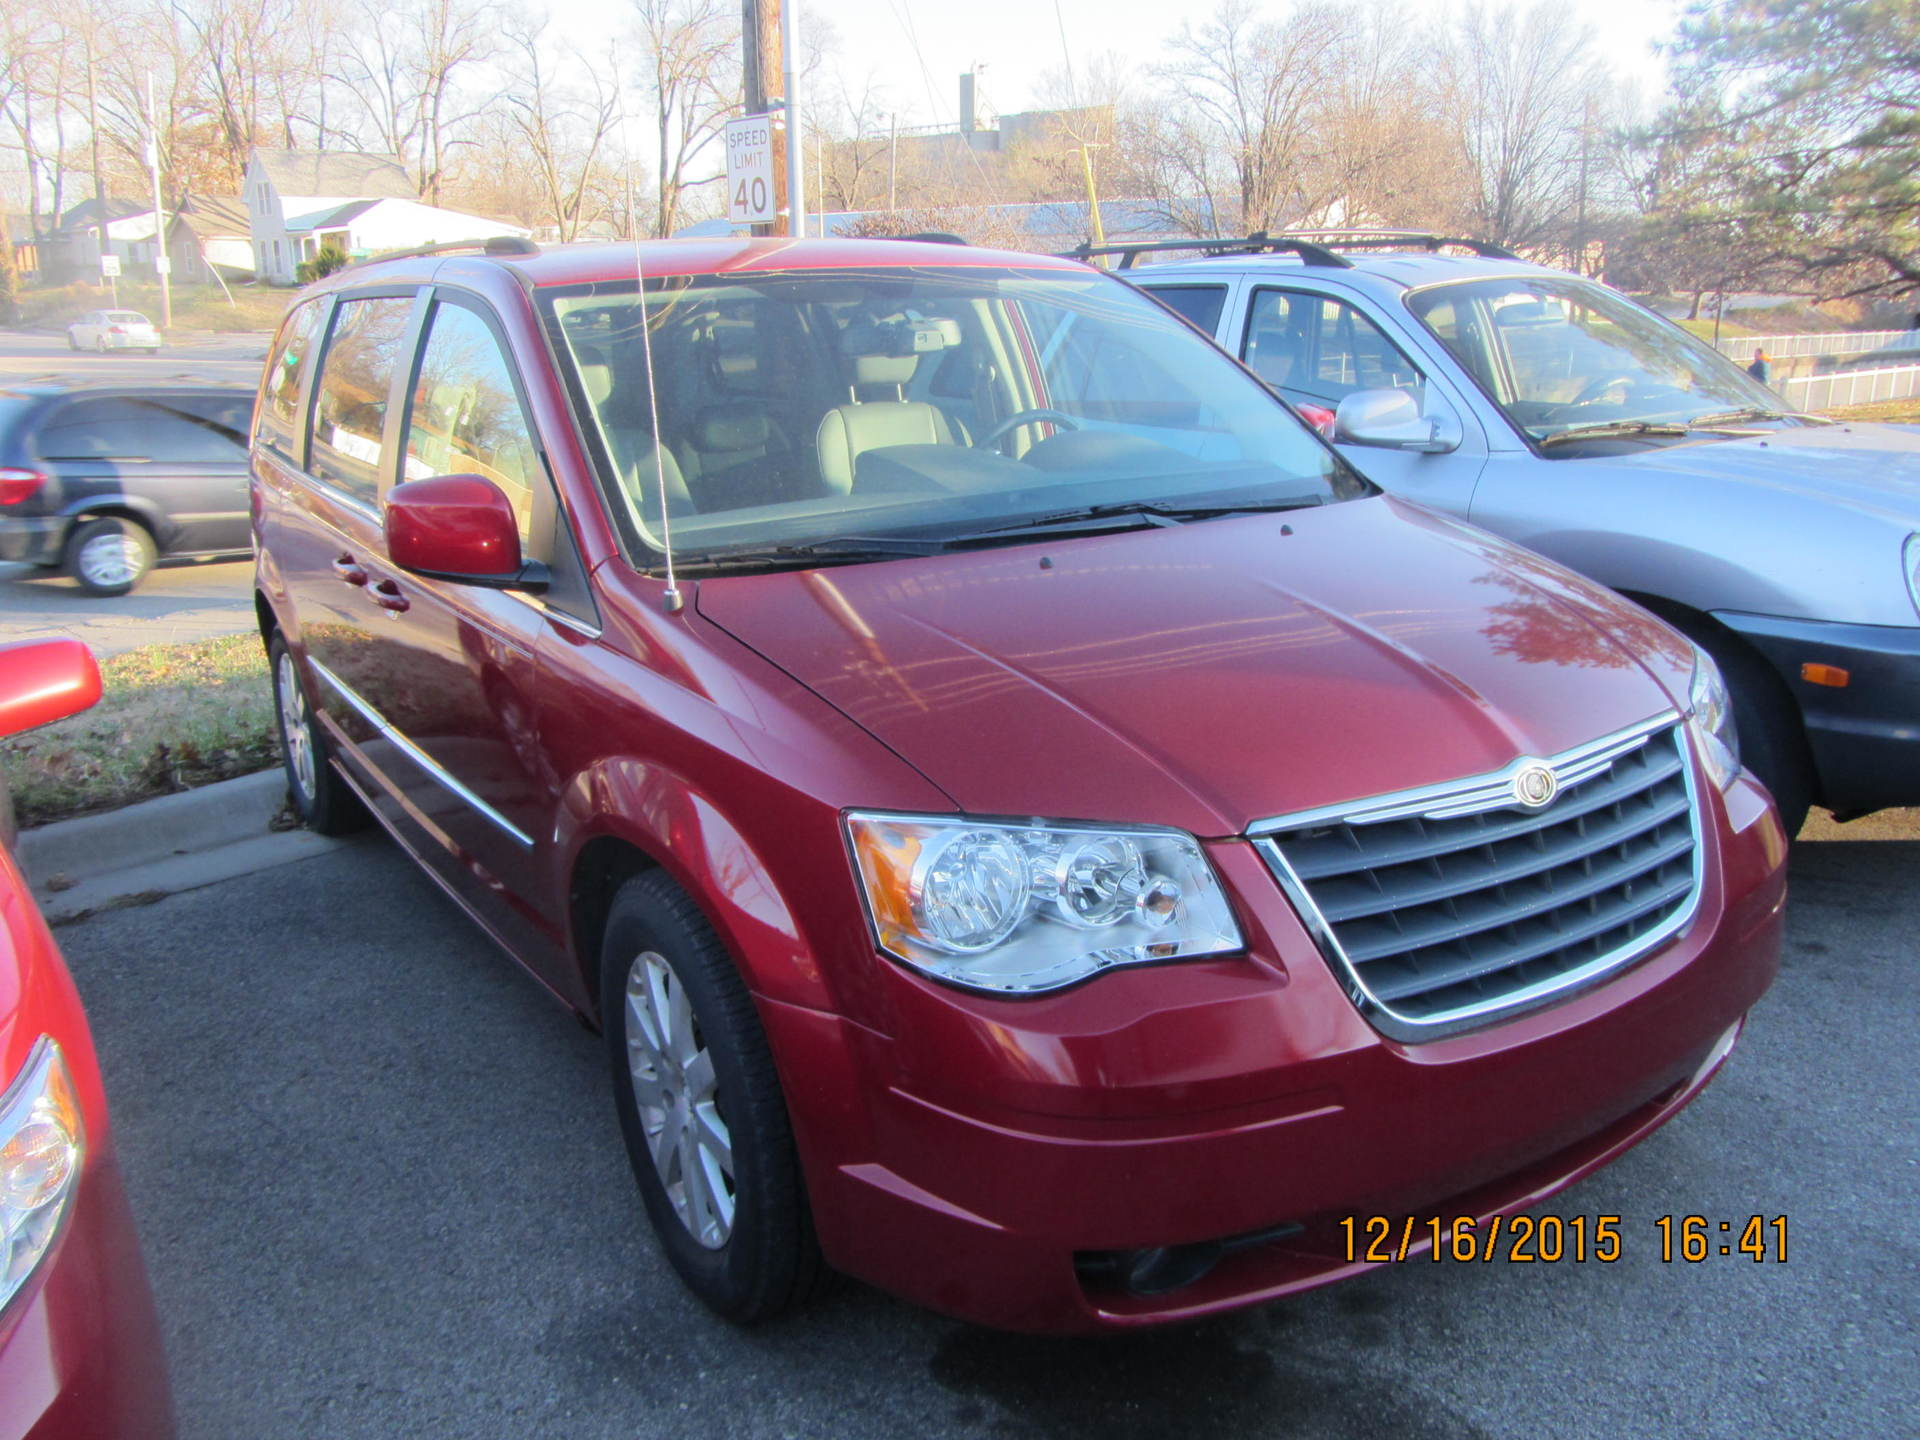 2009 Chrysler Town & Country Van, Red